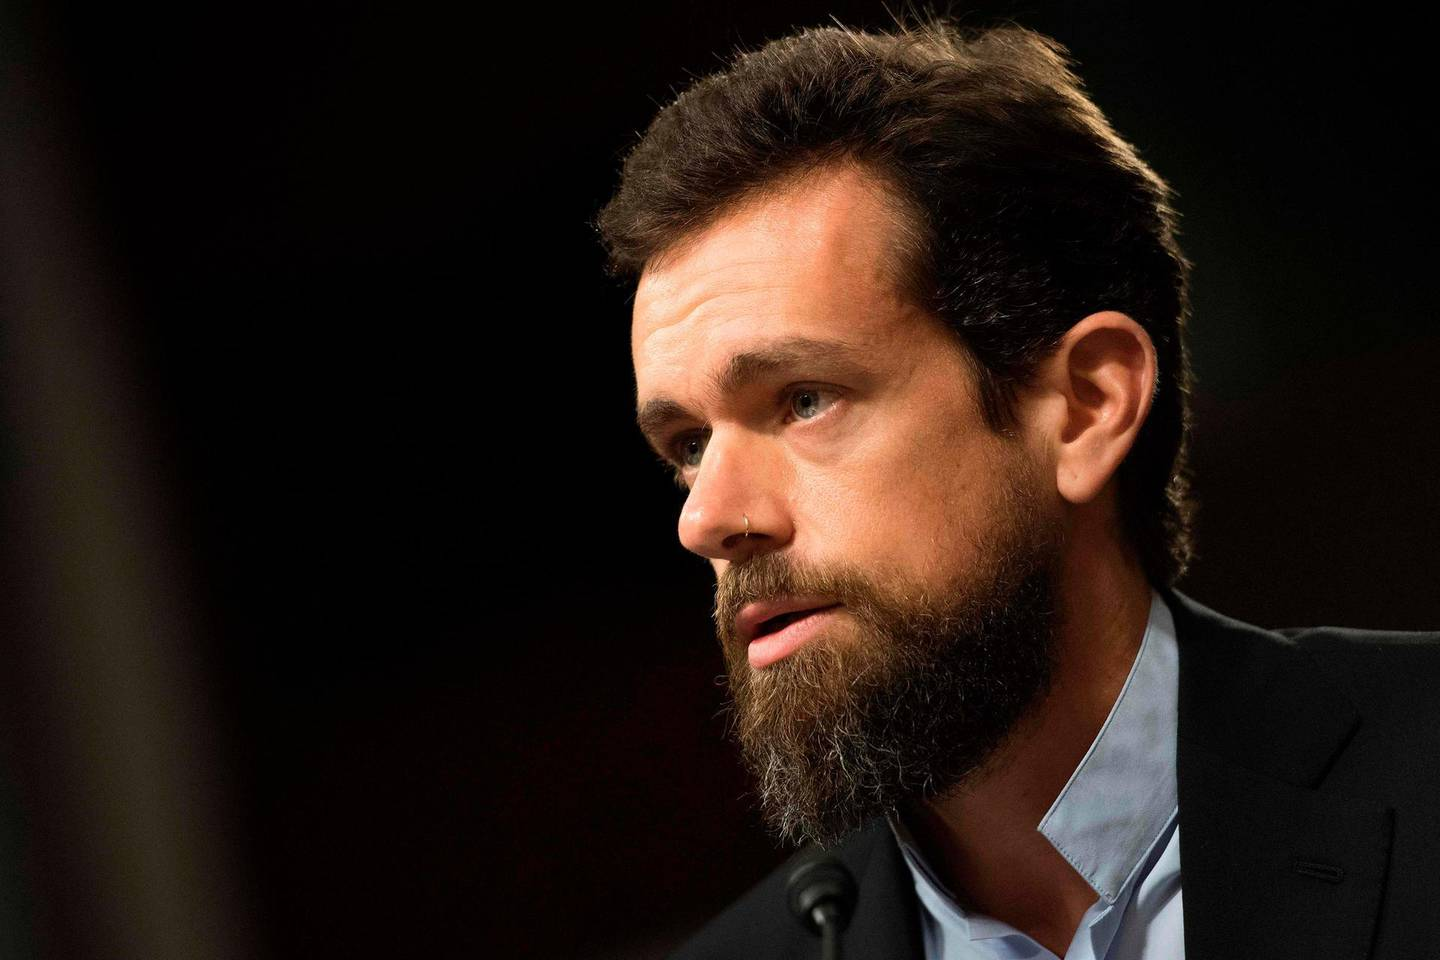 """(FILES) In this file photo taken on September 05, 2018 CEO of Twitter Jack Dorsey testifies before the Senate Intelligence Committee on Capitol Hill in Washington, DC. Twitter chief Jack Dorsey backed on January 13, 2021, its ban of US President Donald Trump, but said it sets a """"dangerous"""" precedent and represents a failure to promote healthy conversation on the platform / AFP / Jim WATSON"""